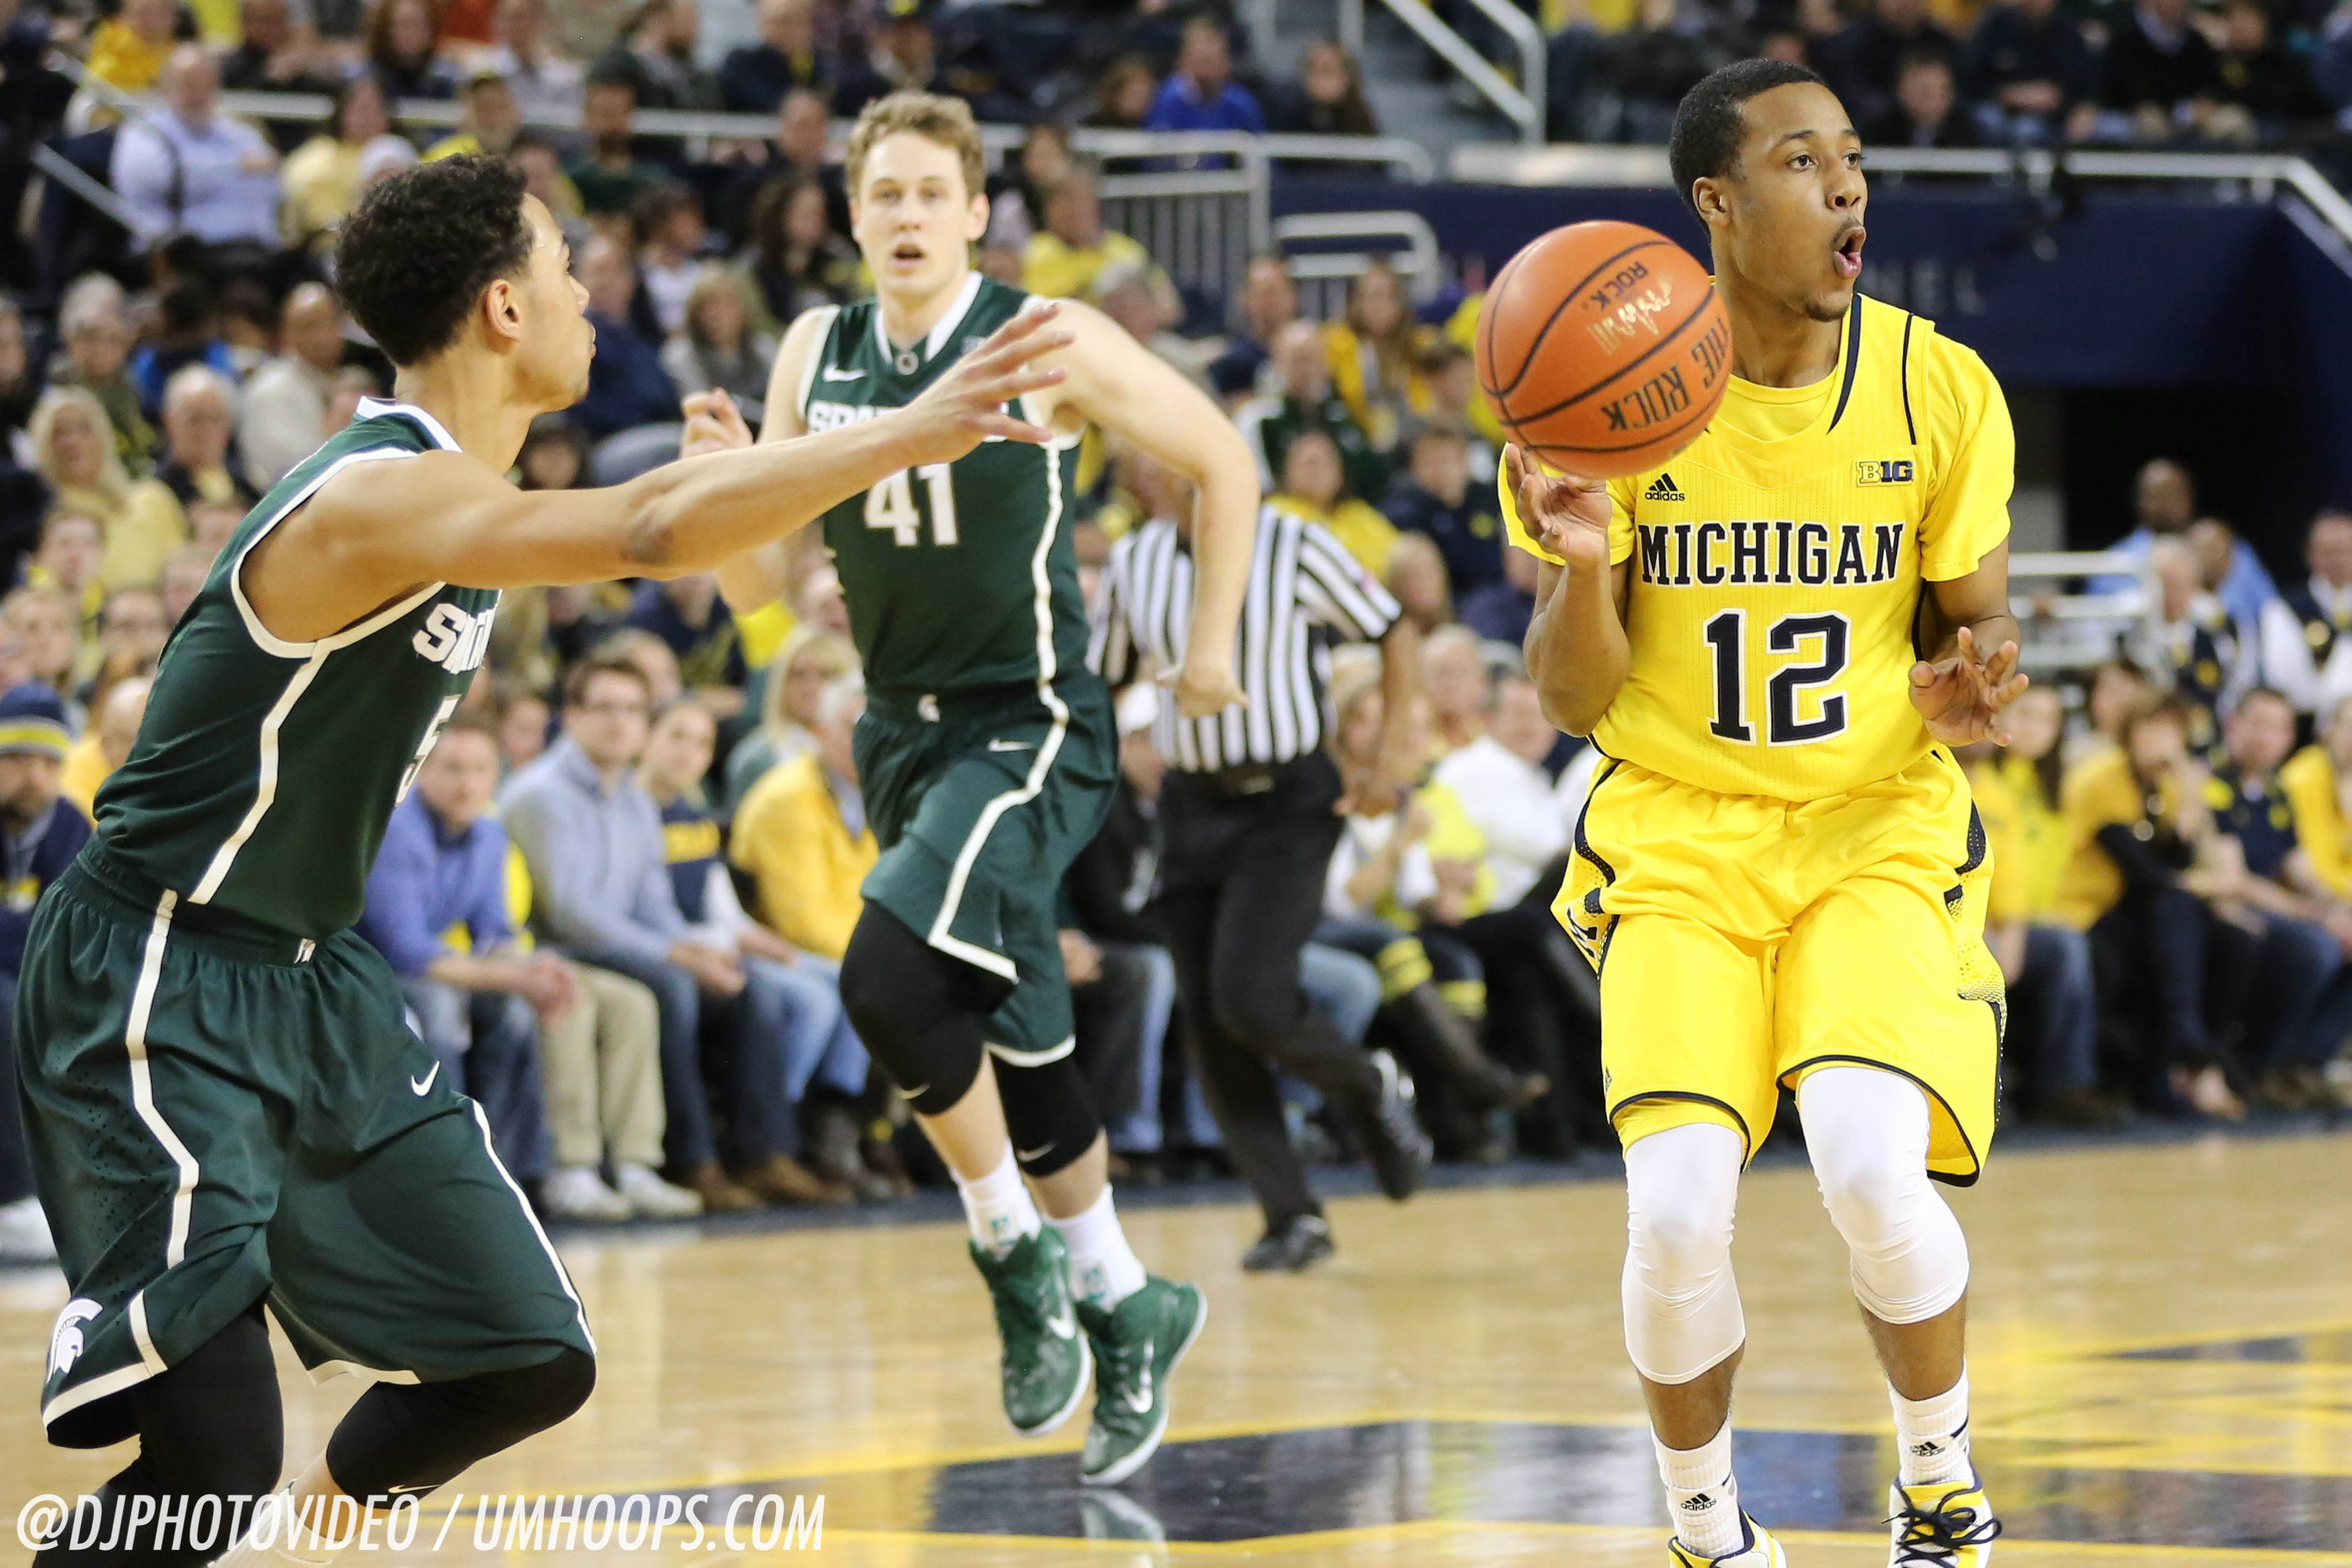 Michigan State 80, Michigan 67-7